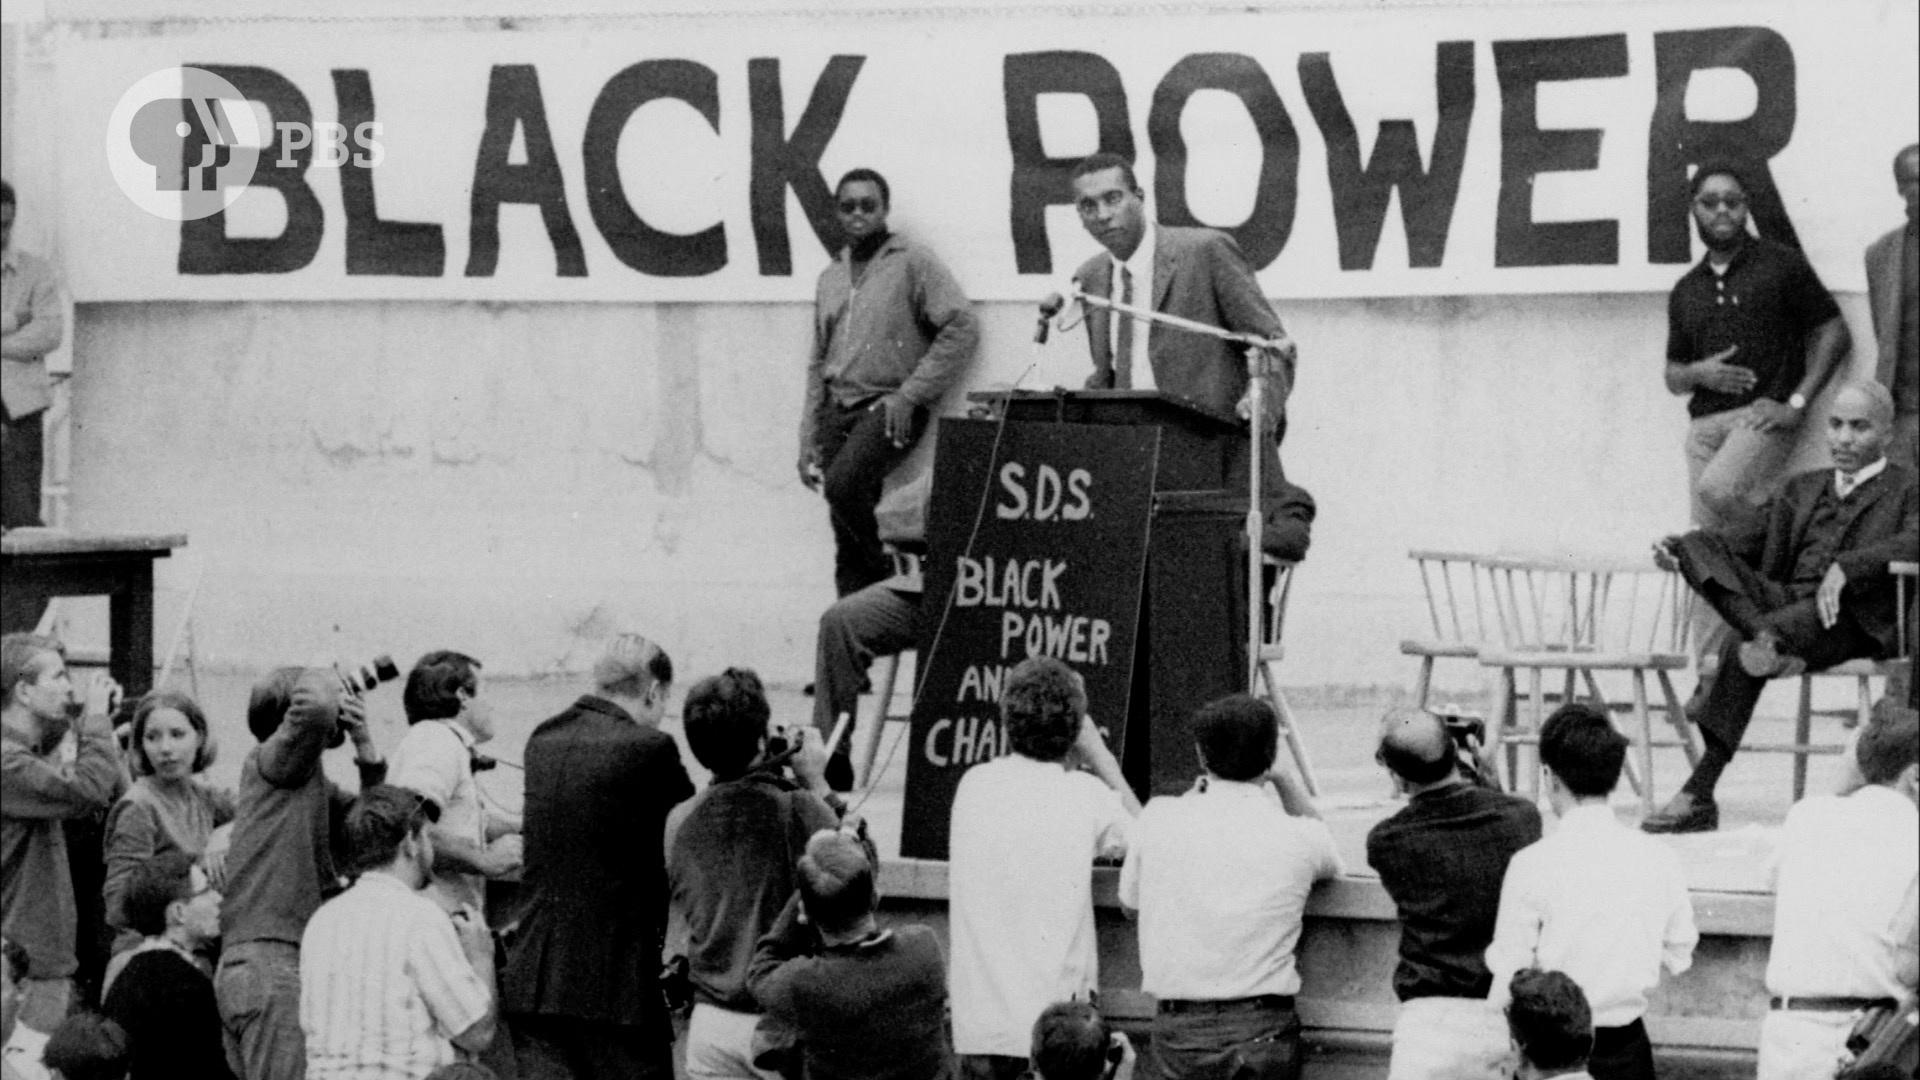 an analysis of the black power movement in america